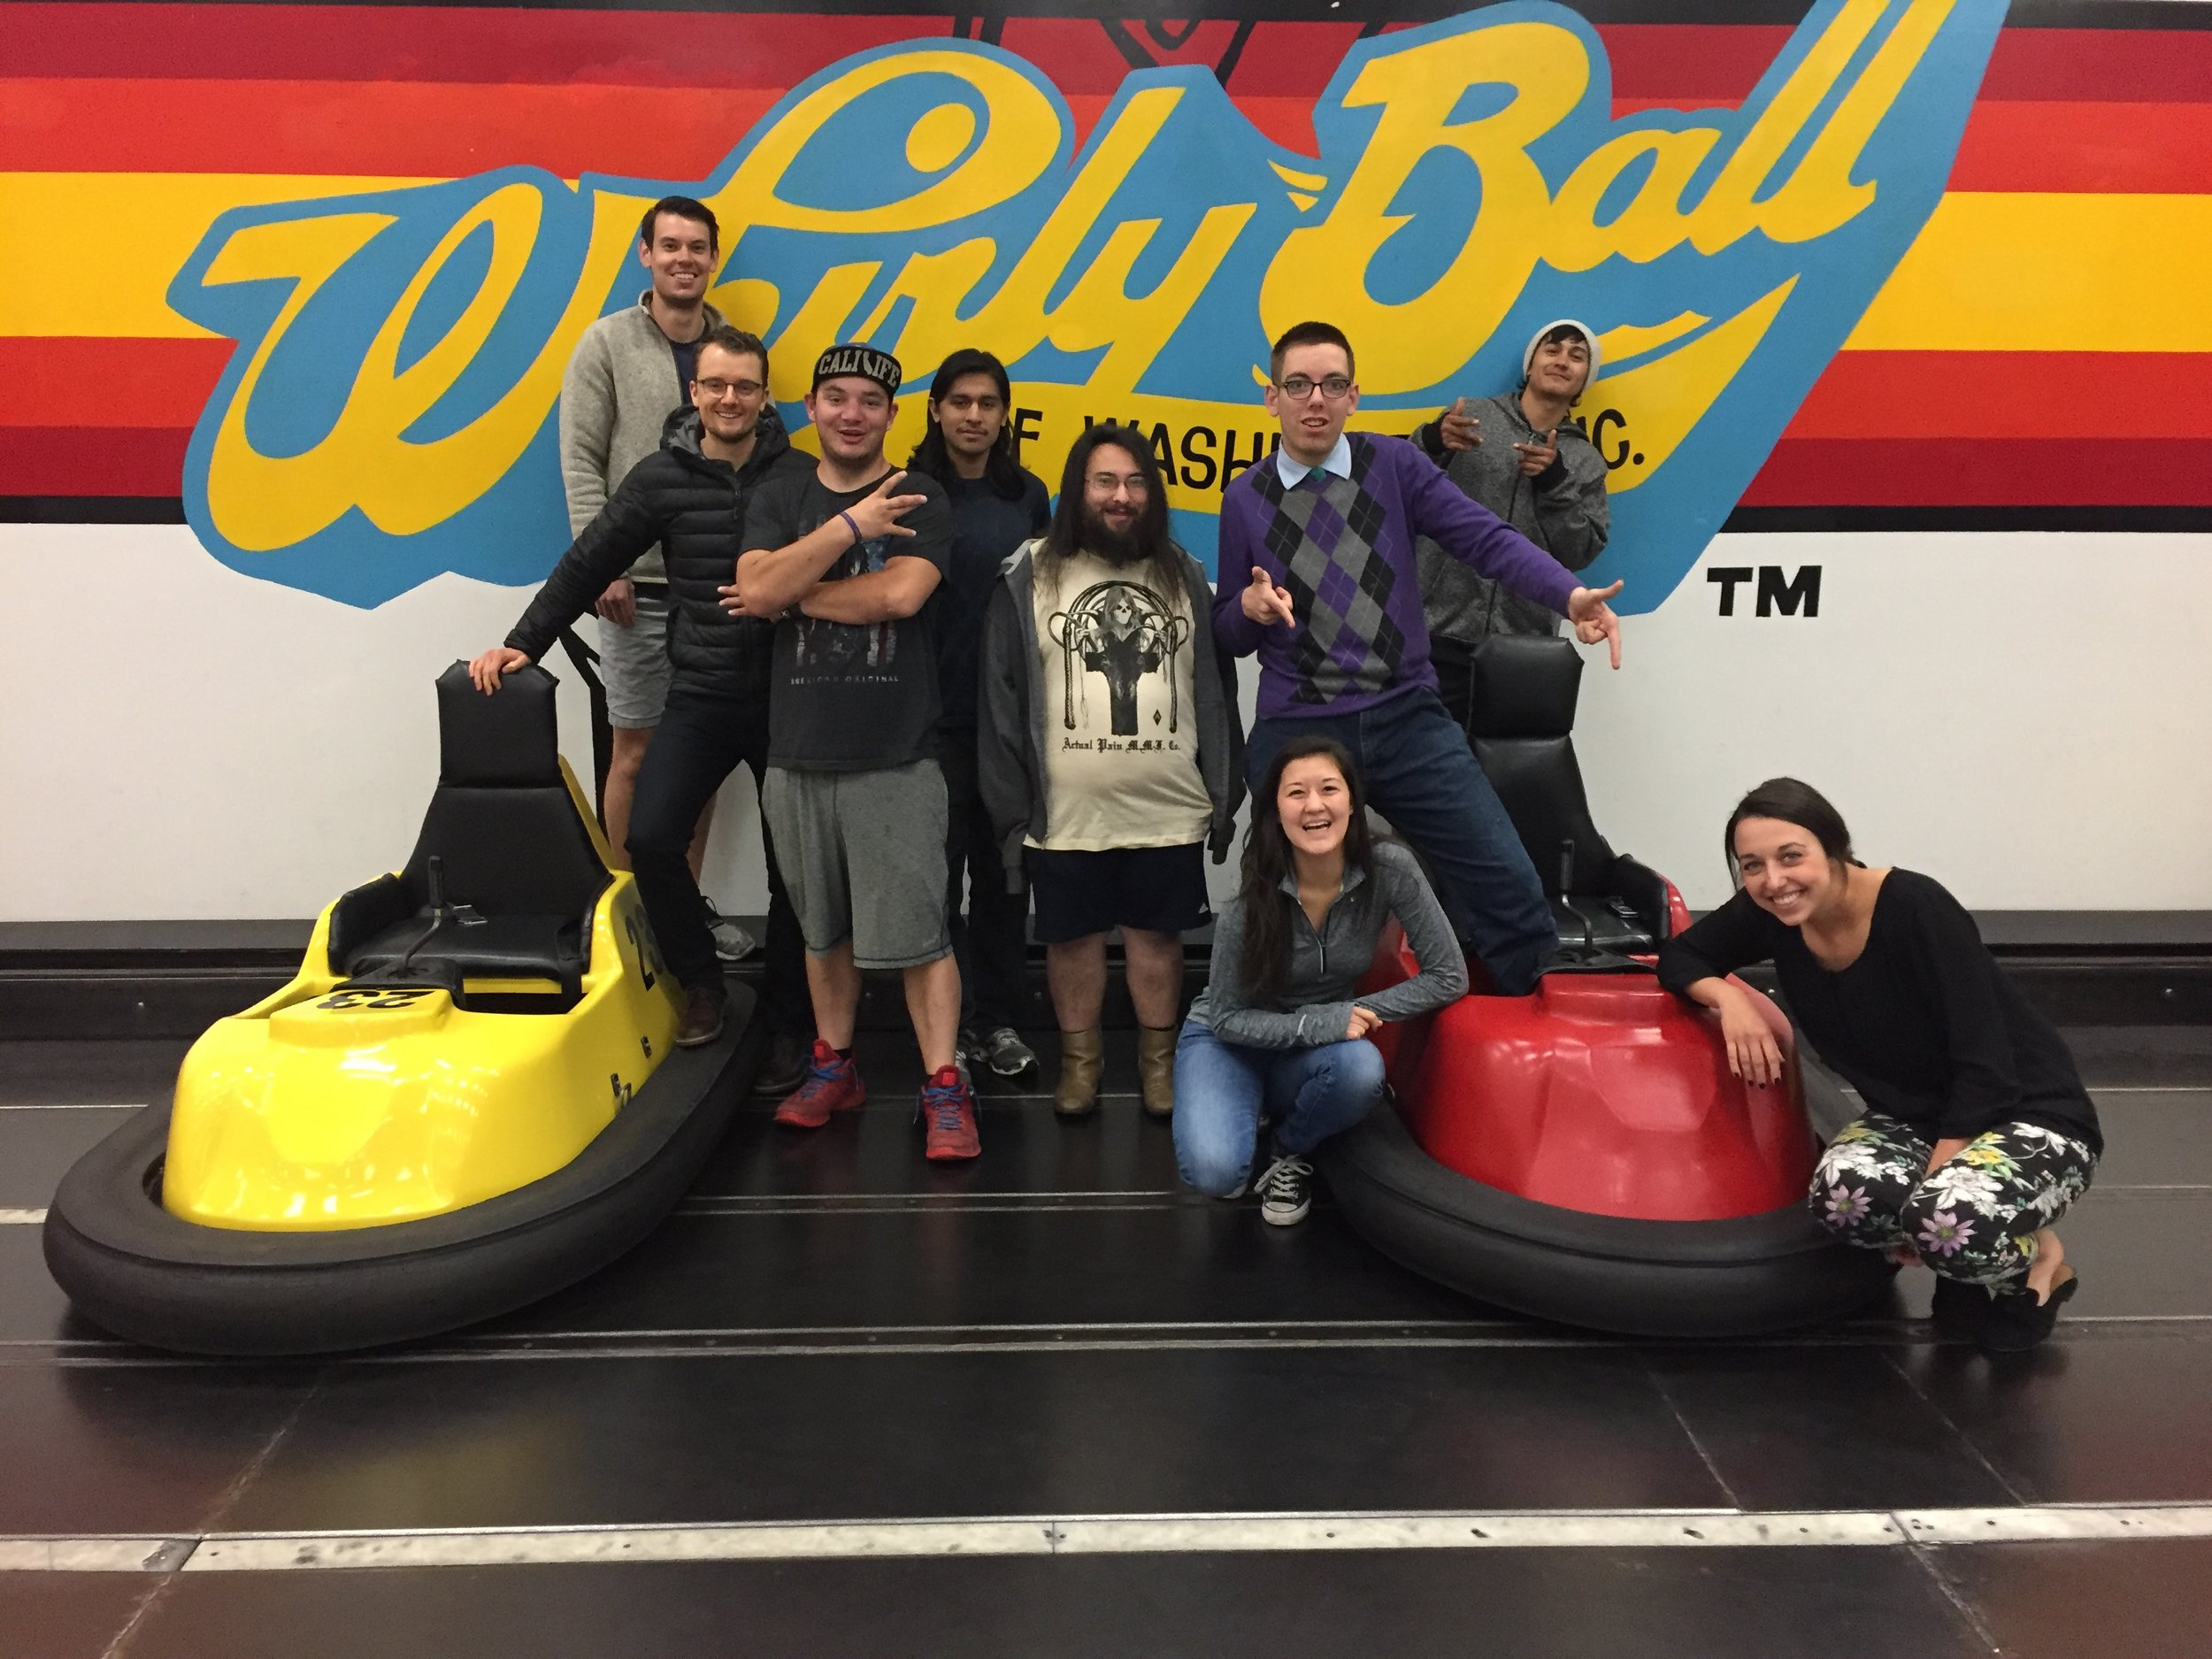 Peter and Gary (two of SYM's beloved volunteers) recently played WhirlyBall with youth! We have the BEST volunteers around!